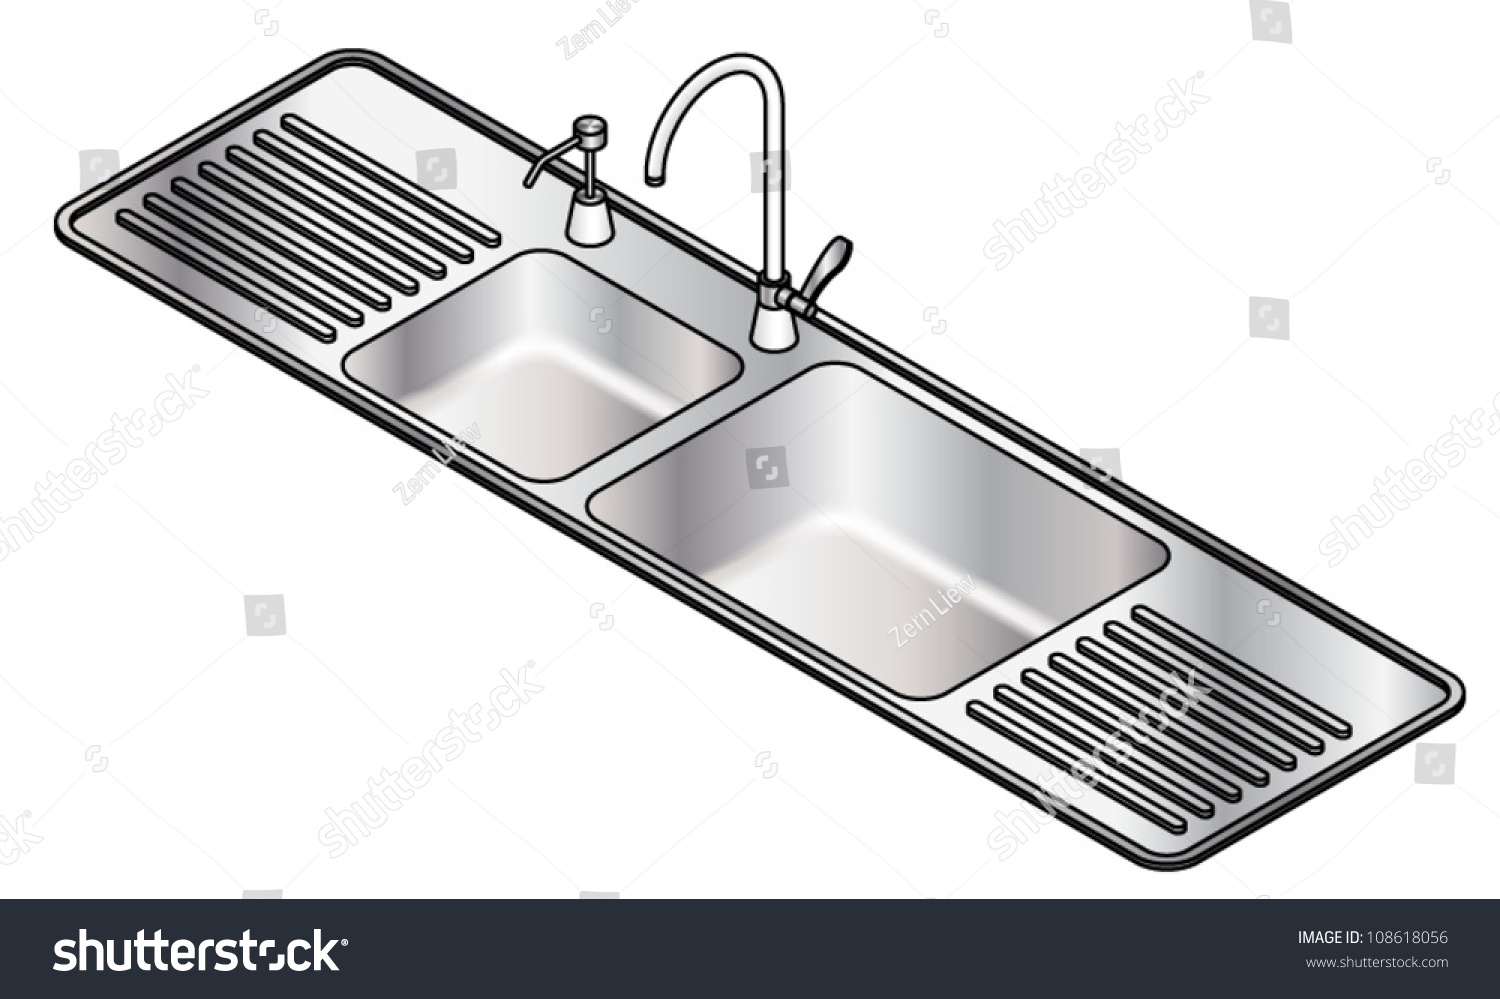 A Twin Bowl Stainless Steel Kitchen Sink With A Swivel Mixer Tap ...